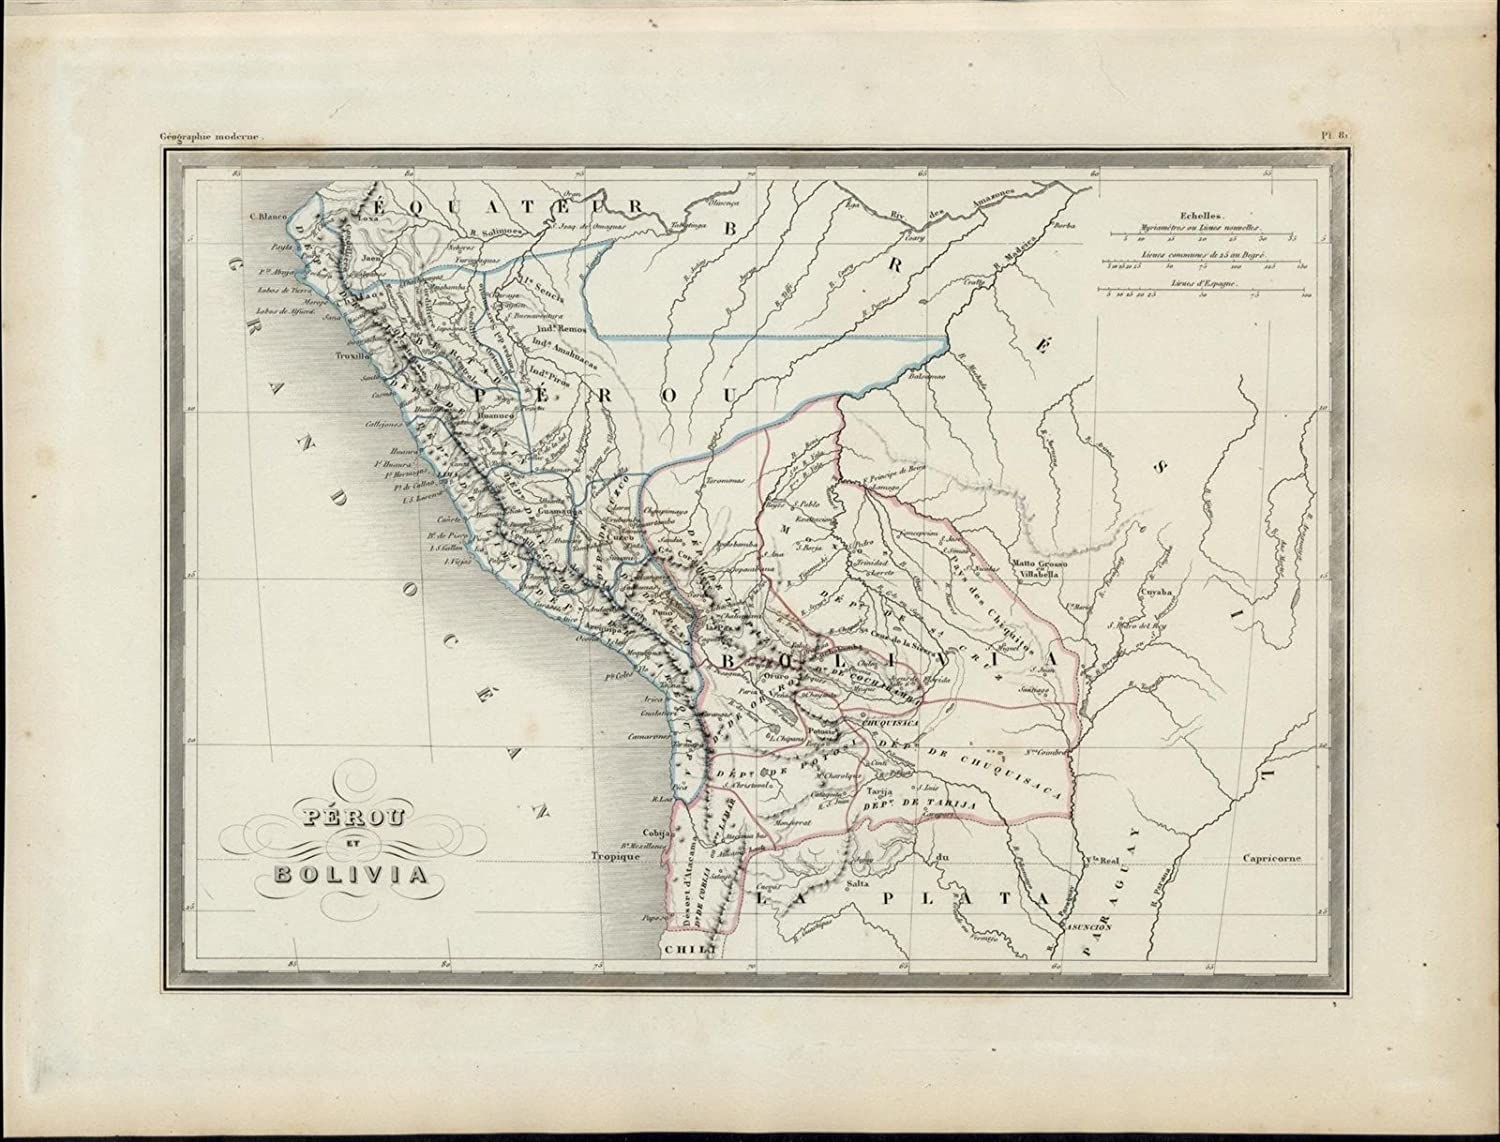 Andes Mountains Peru Map.Peru Bolivia Rivers Andes Mountain Range Nice 1846 Uncommon Antique